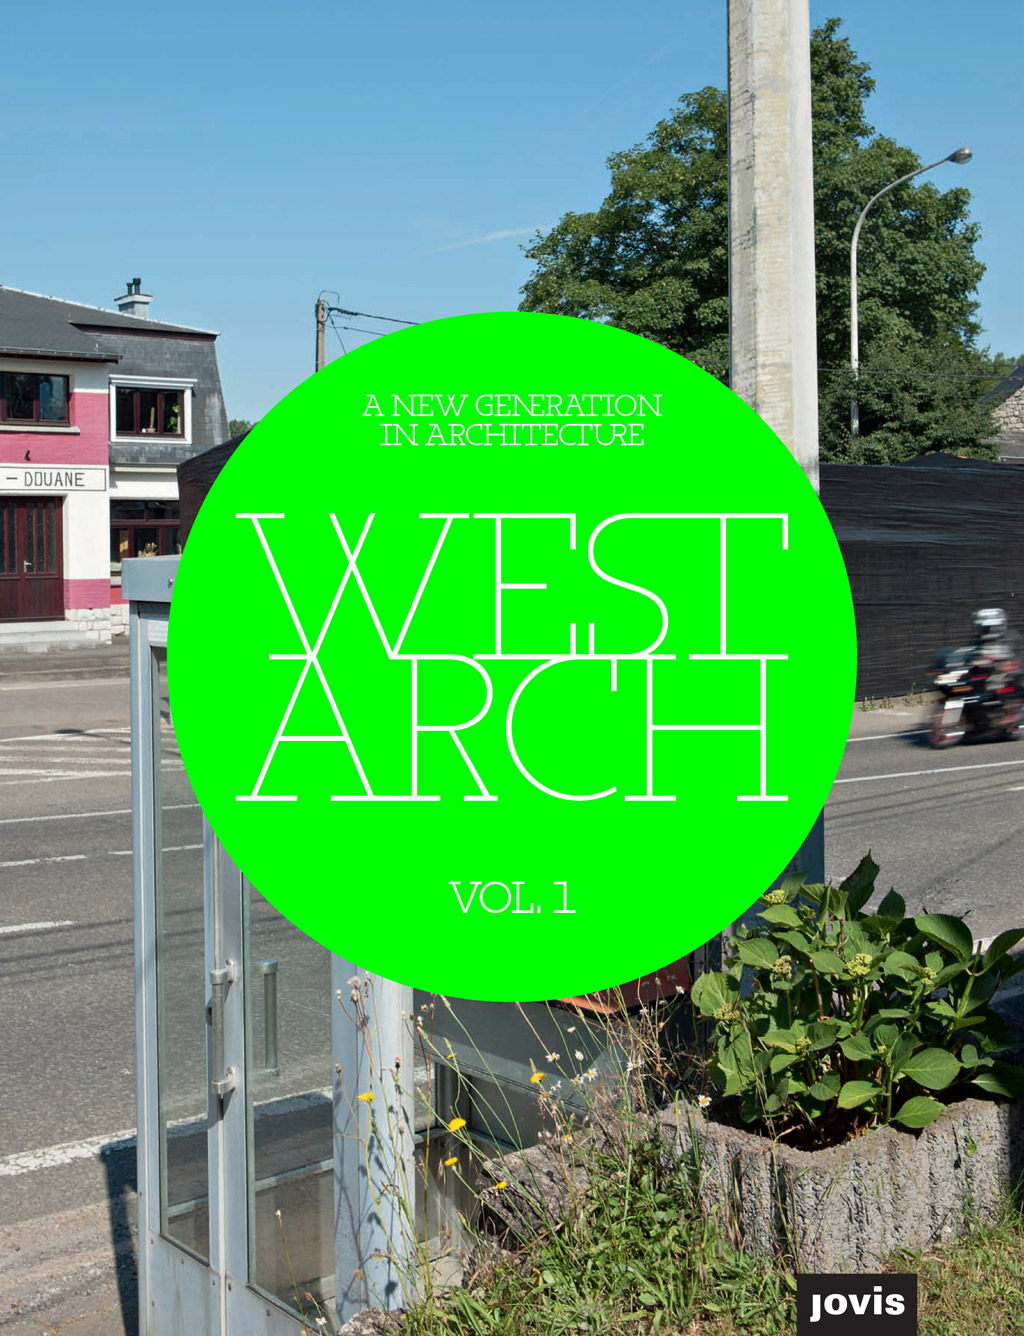 New Generation in Architecture. West Arch vol.1